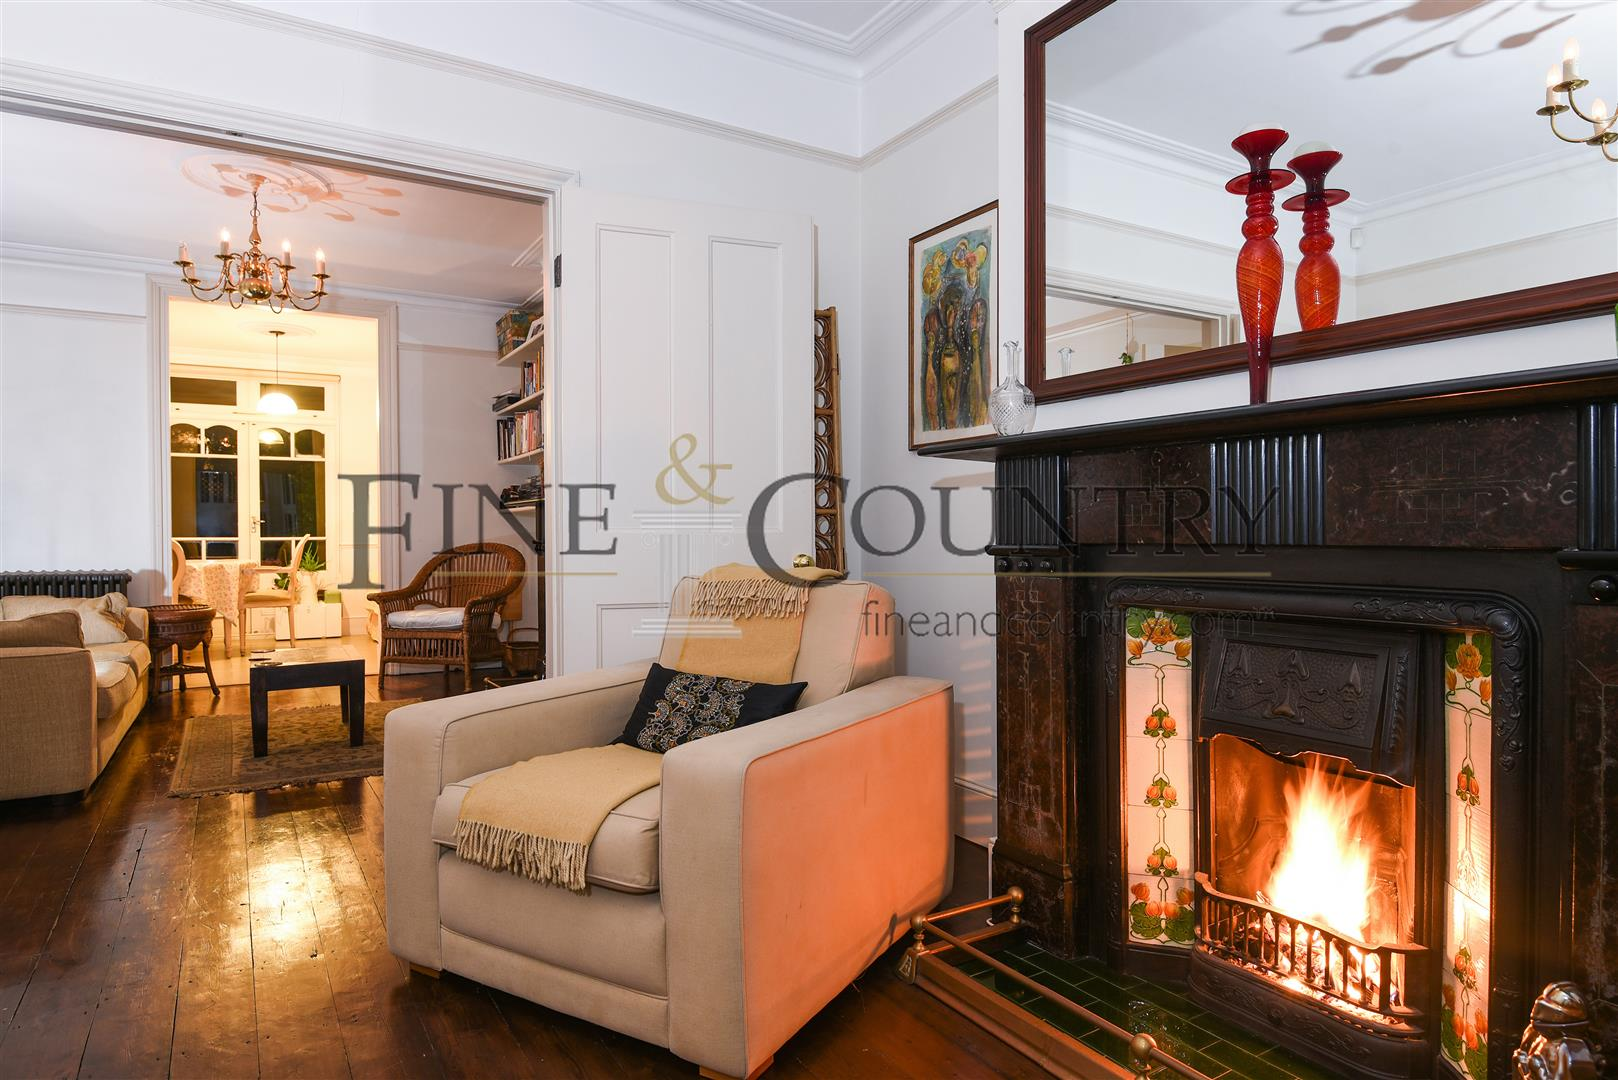 4 bedroom house for sale in london